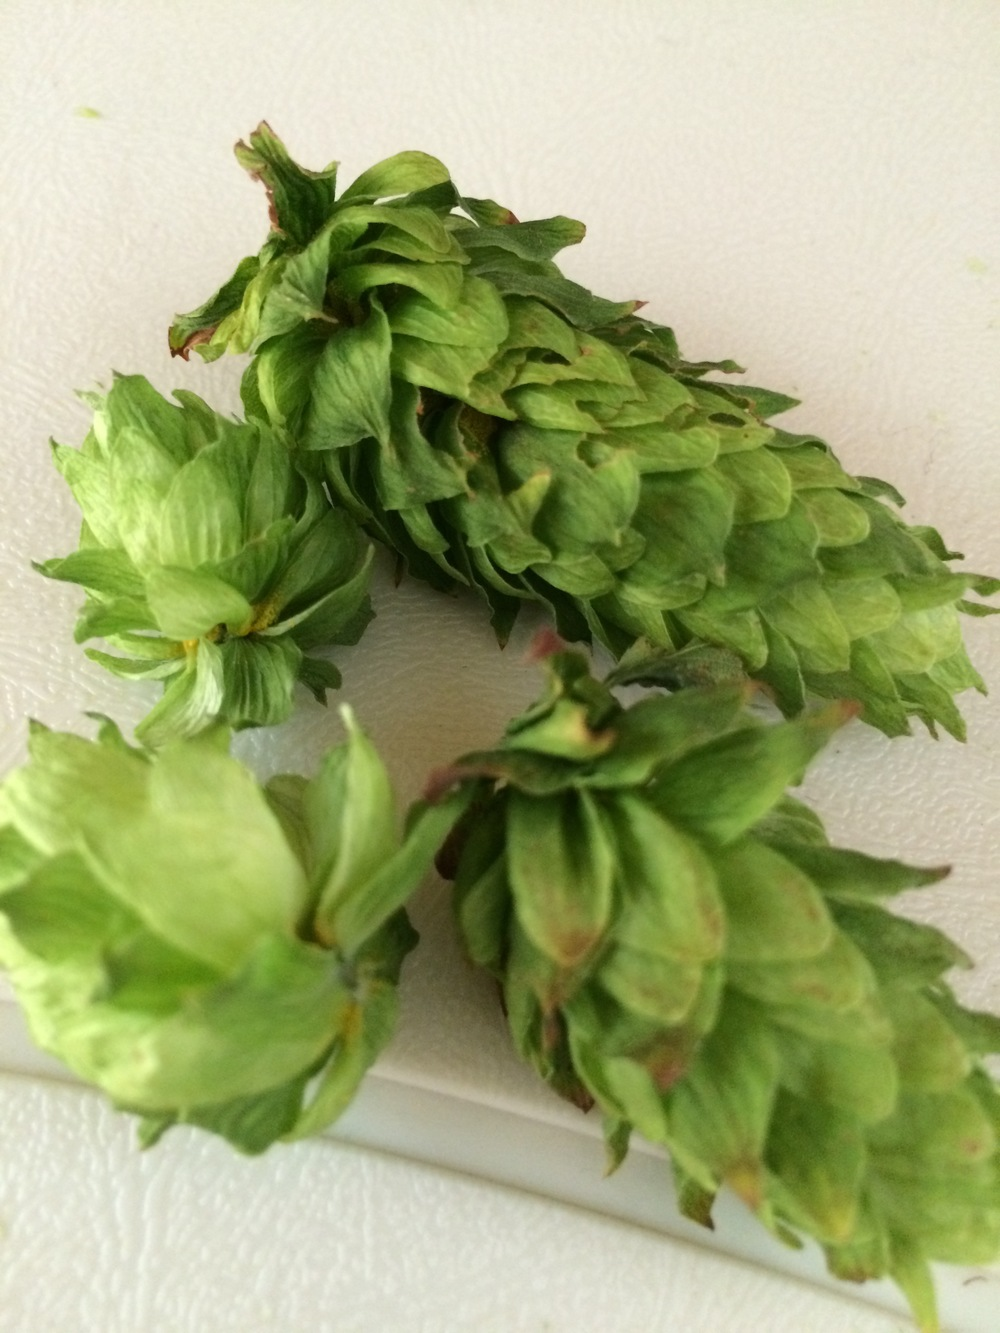 Detail of dried hops